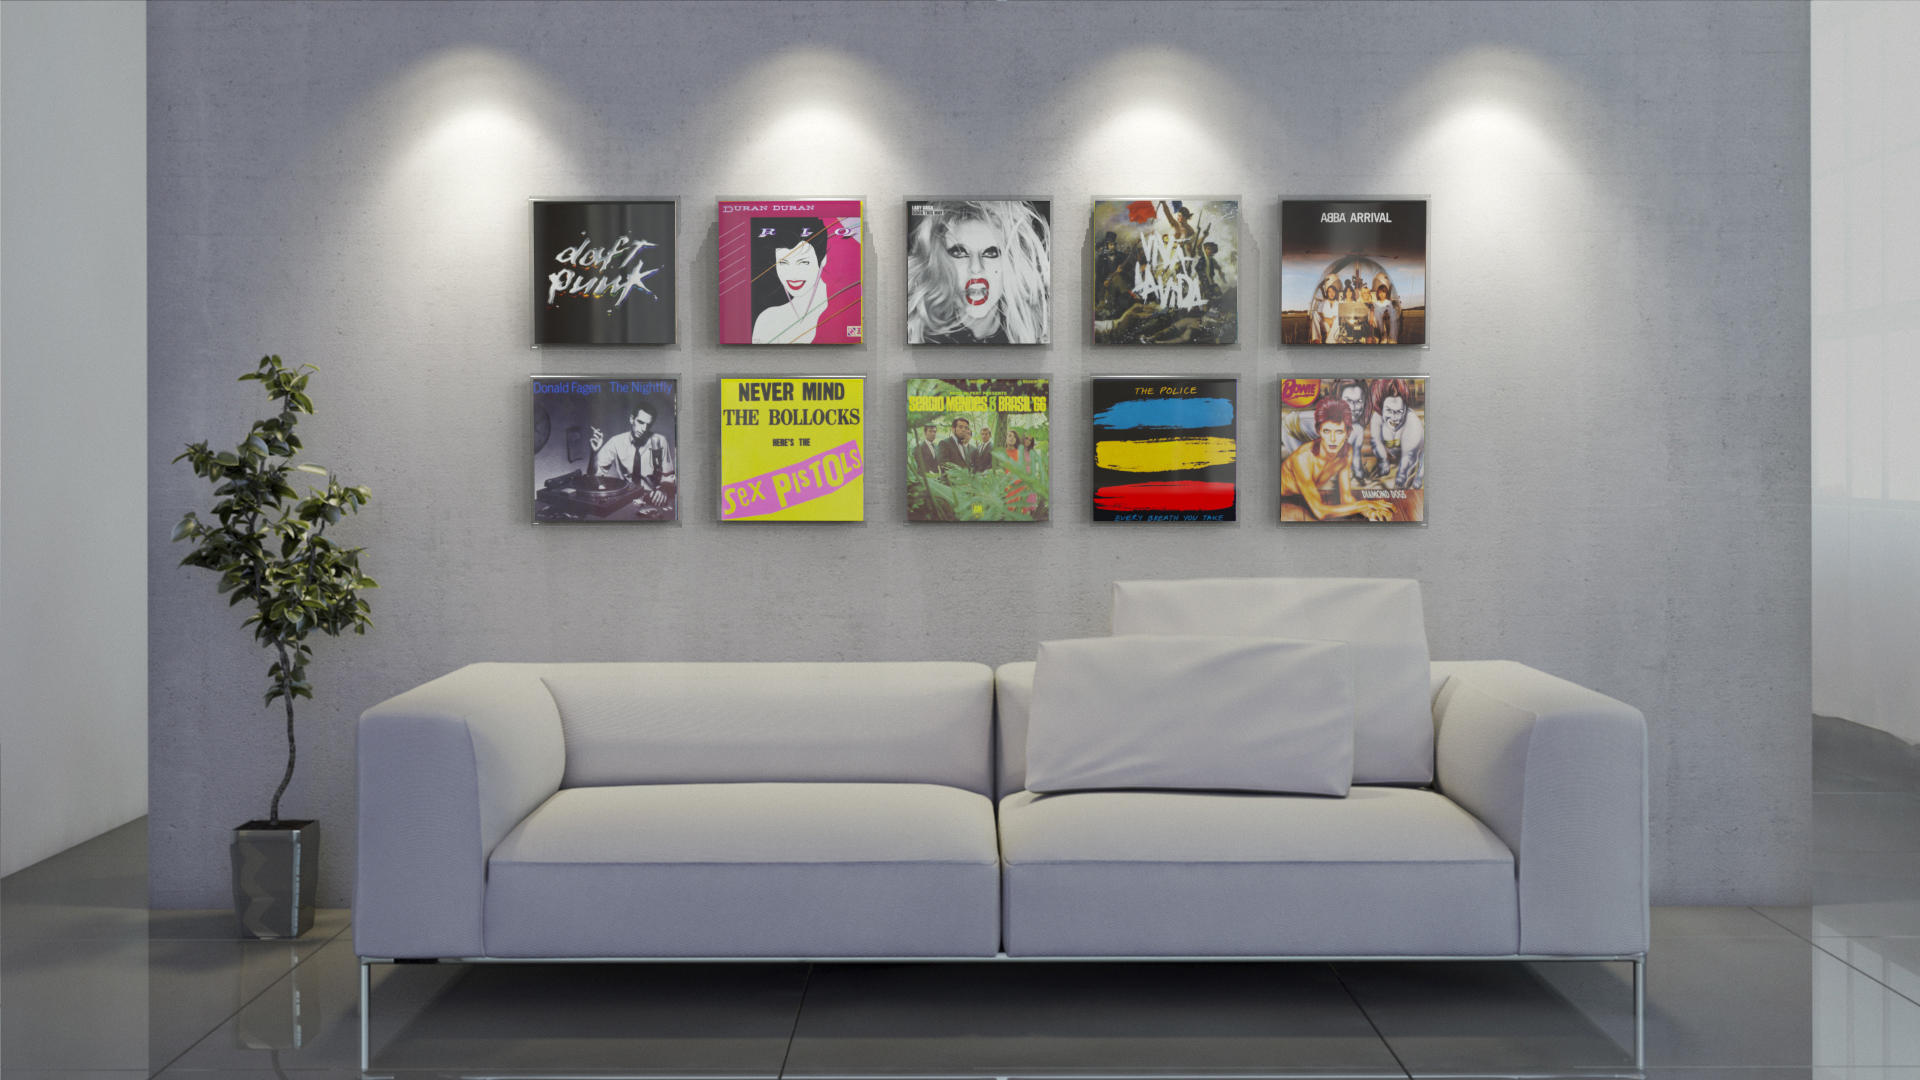 Magic Vinyl Display im Wohnzimmer